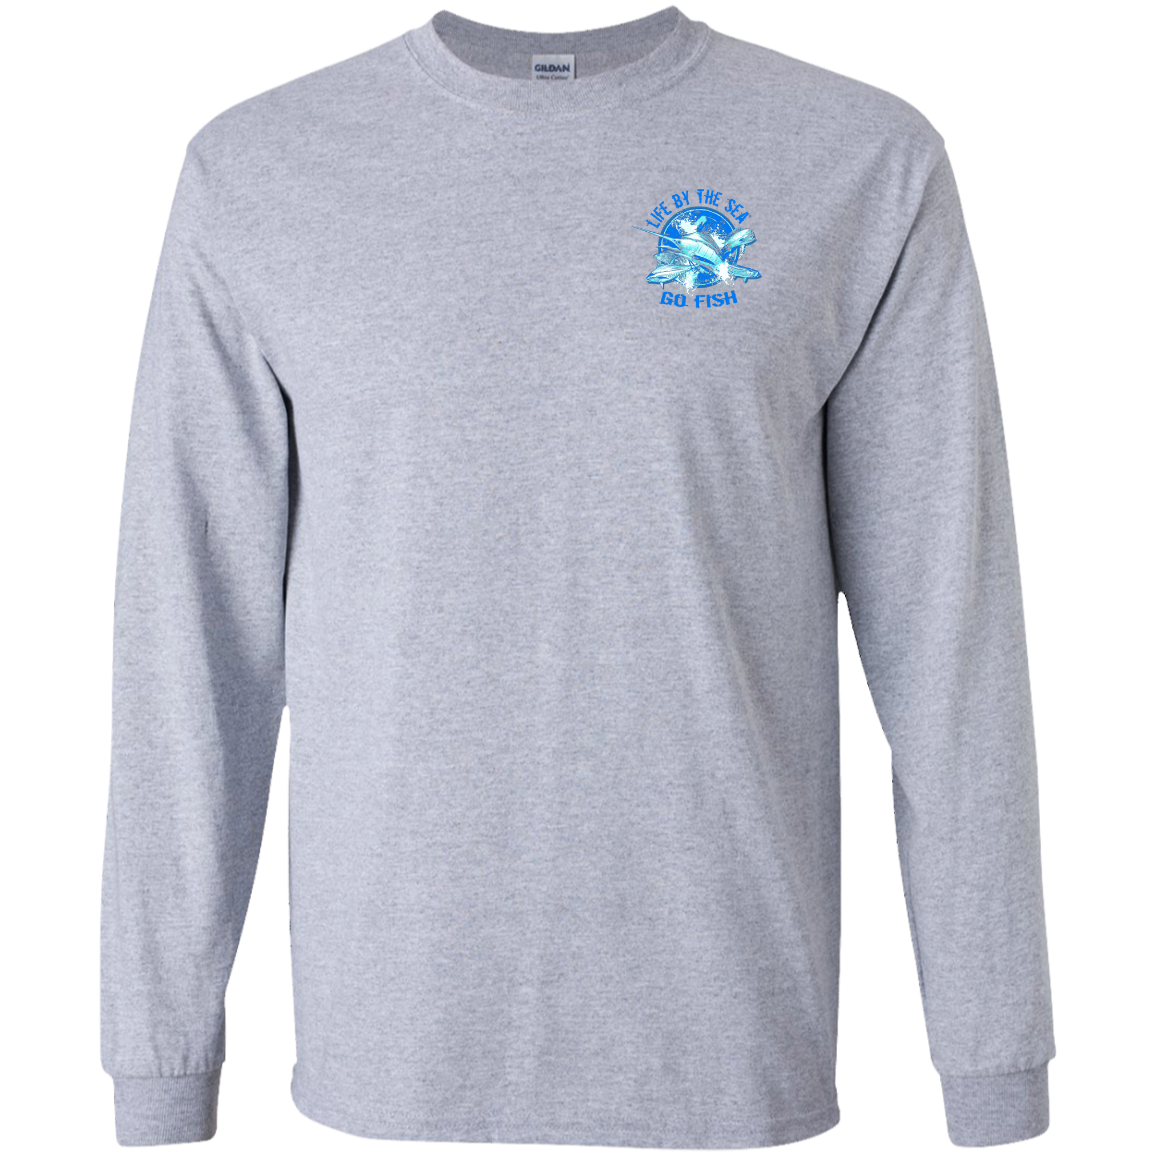 Go Fish Long Sleeve T-Shirt (Light)